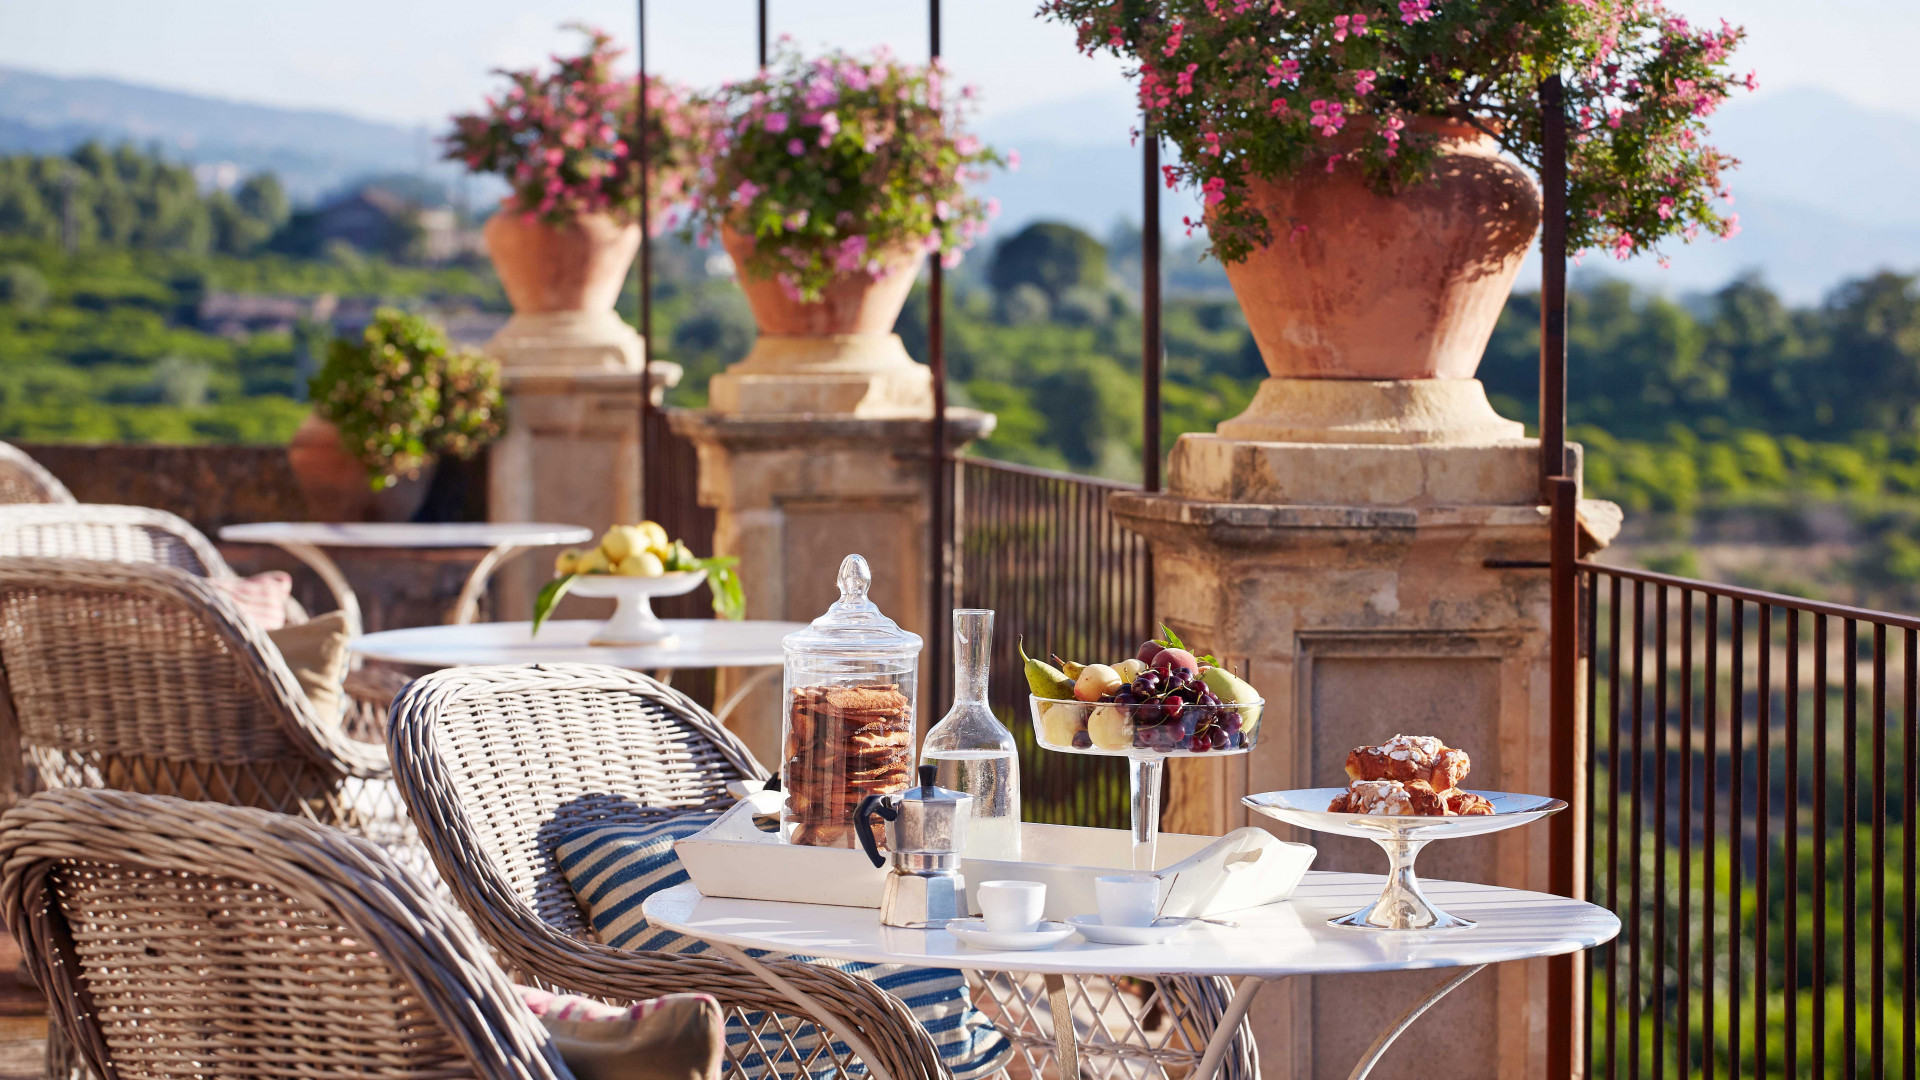 Dining and drinking al fresco is always an option at Rocca delle Tre Contrade